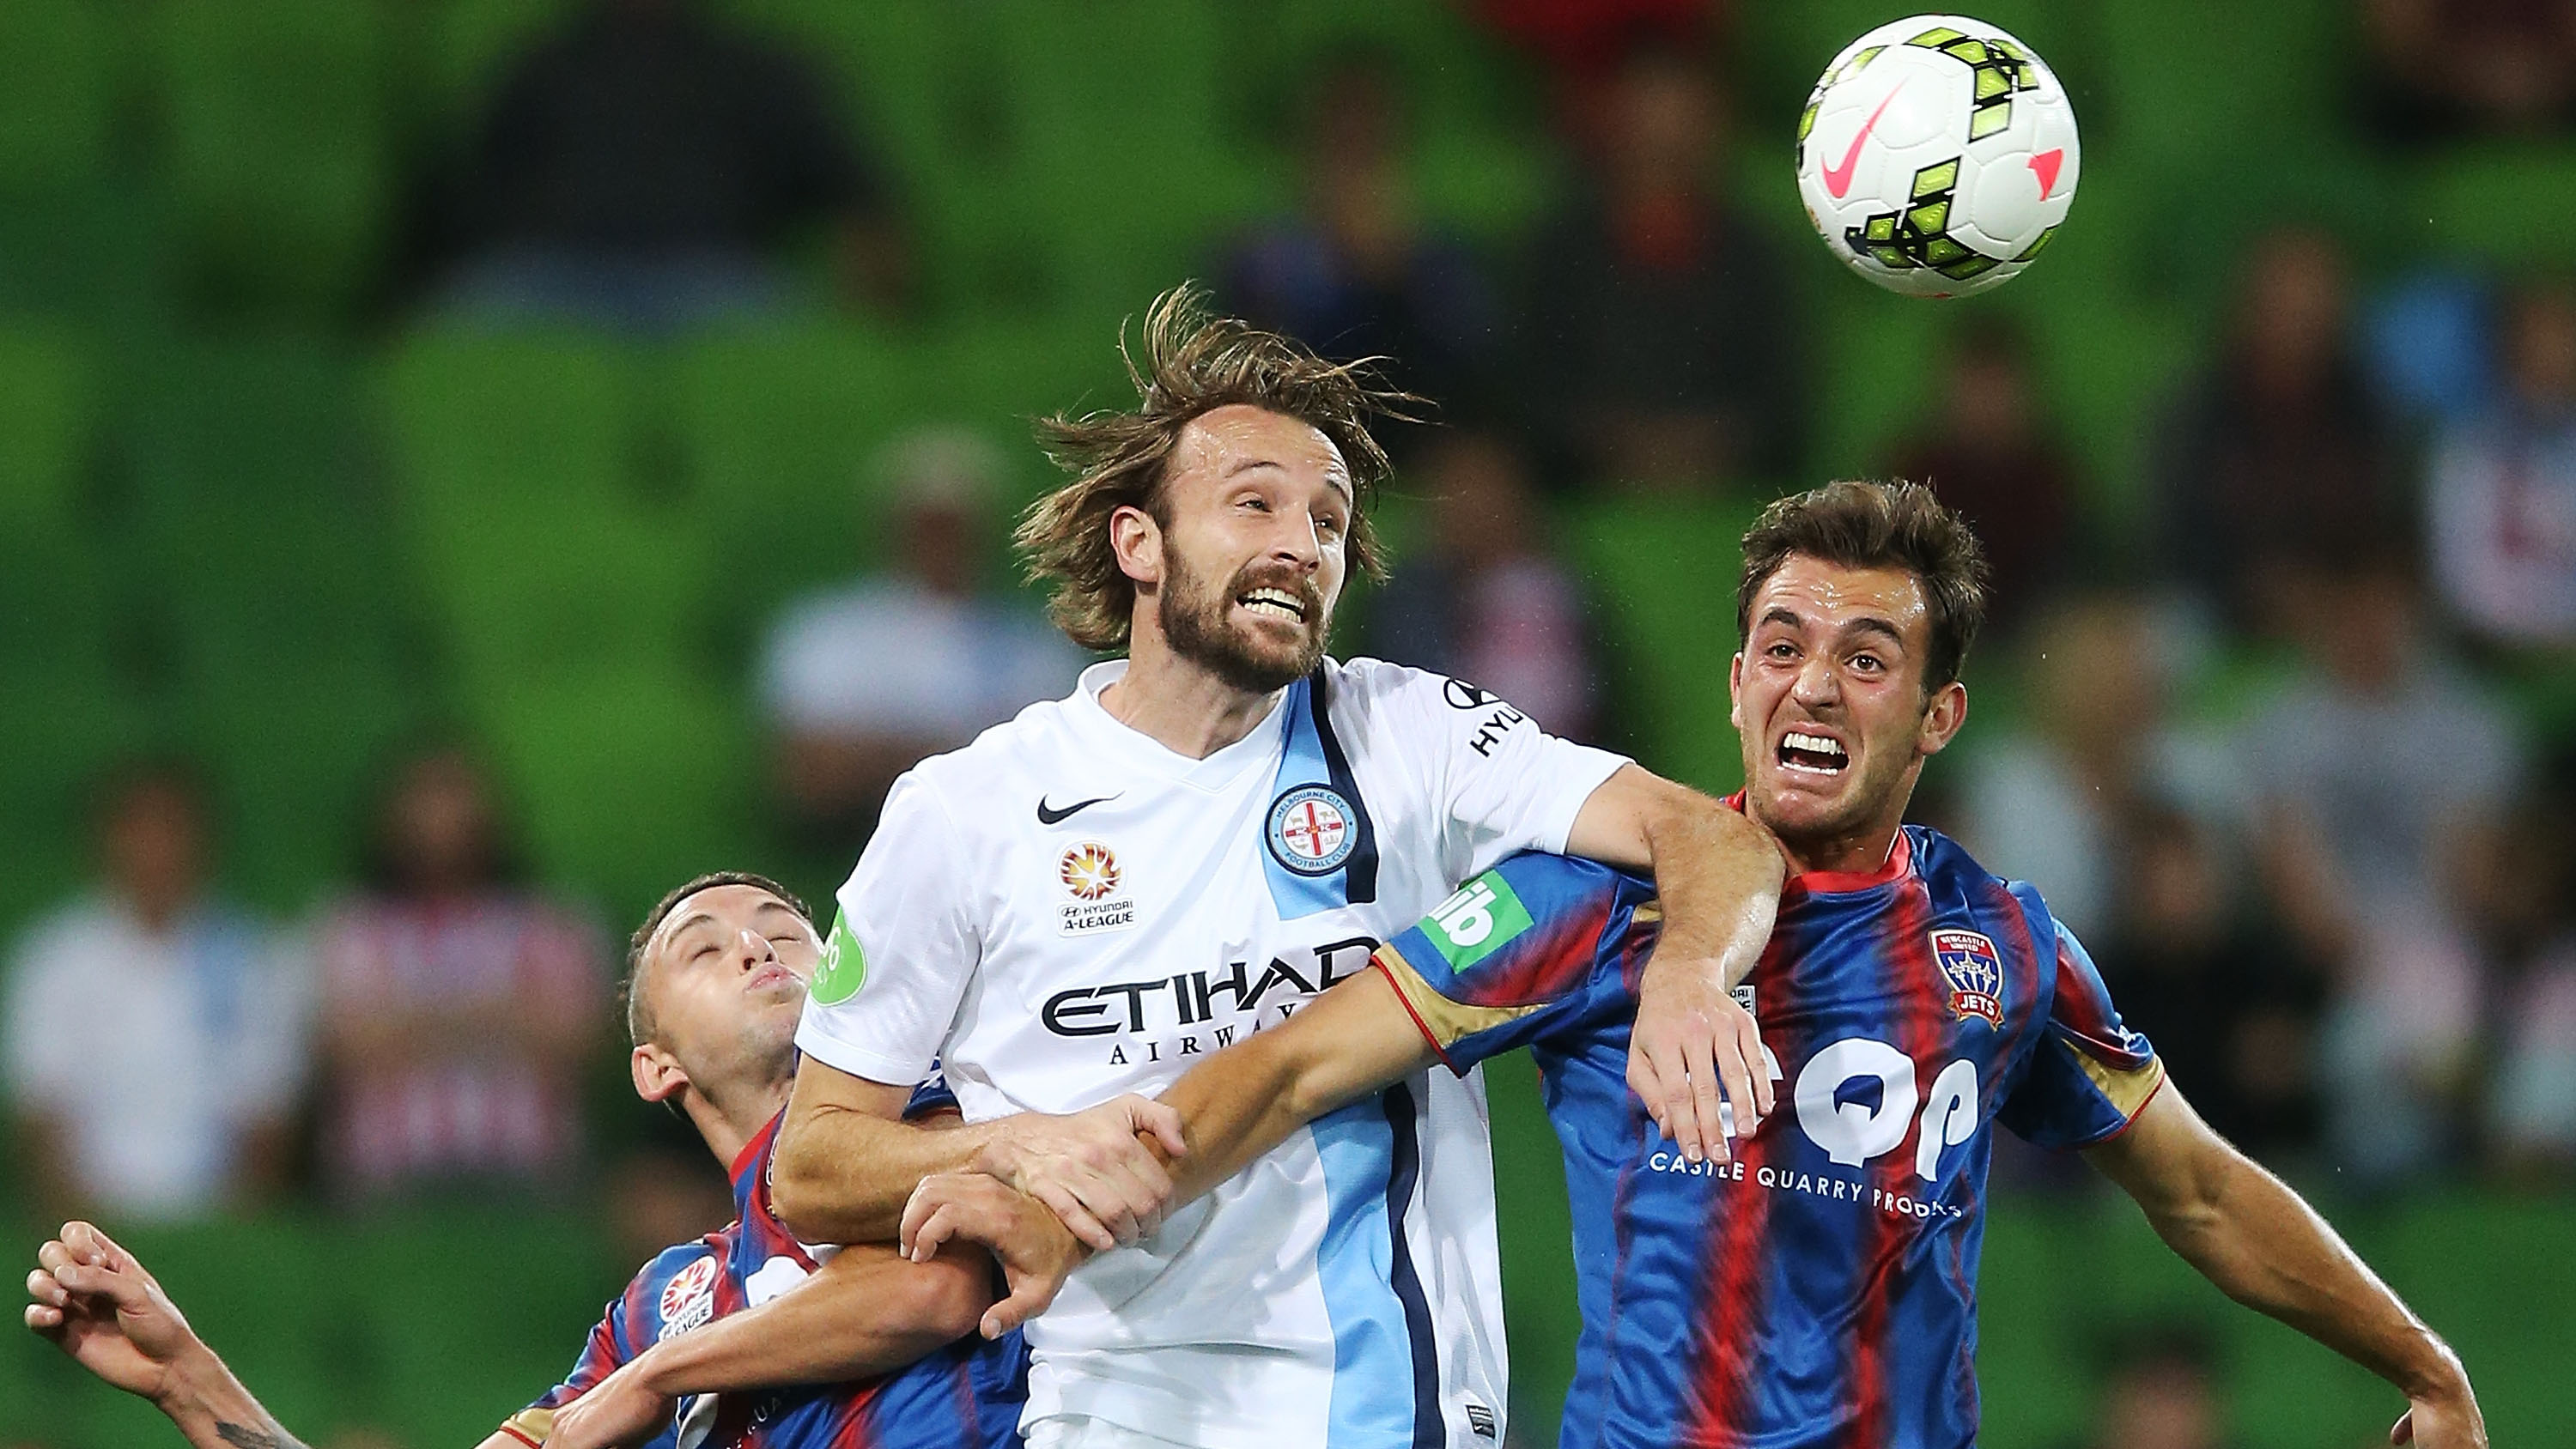 Newcastle Jets vs Melbourne City